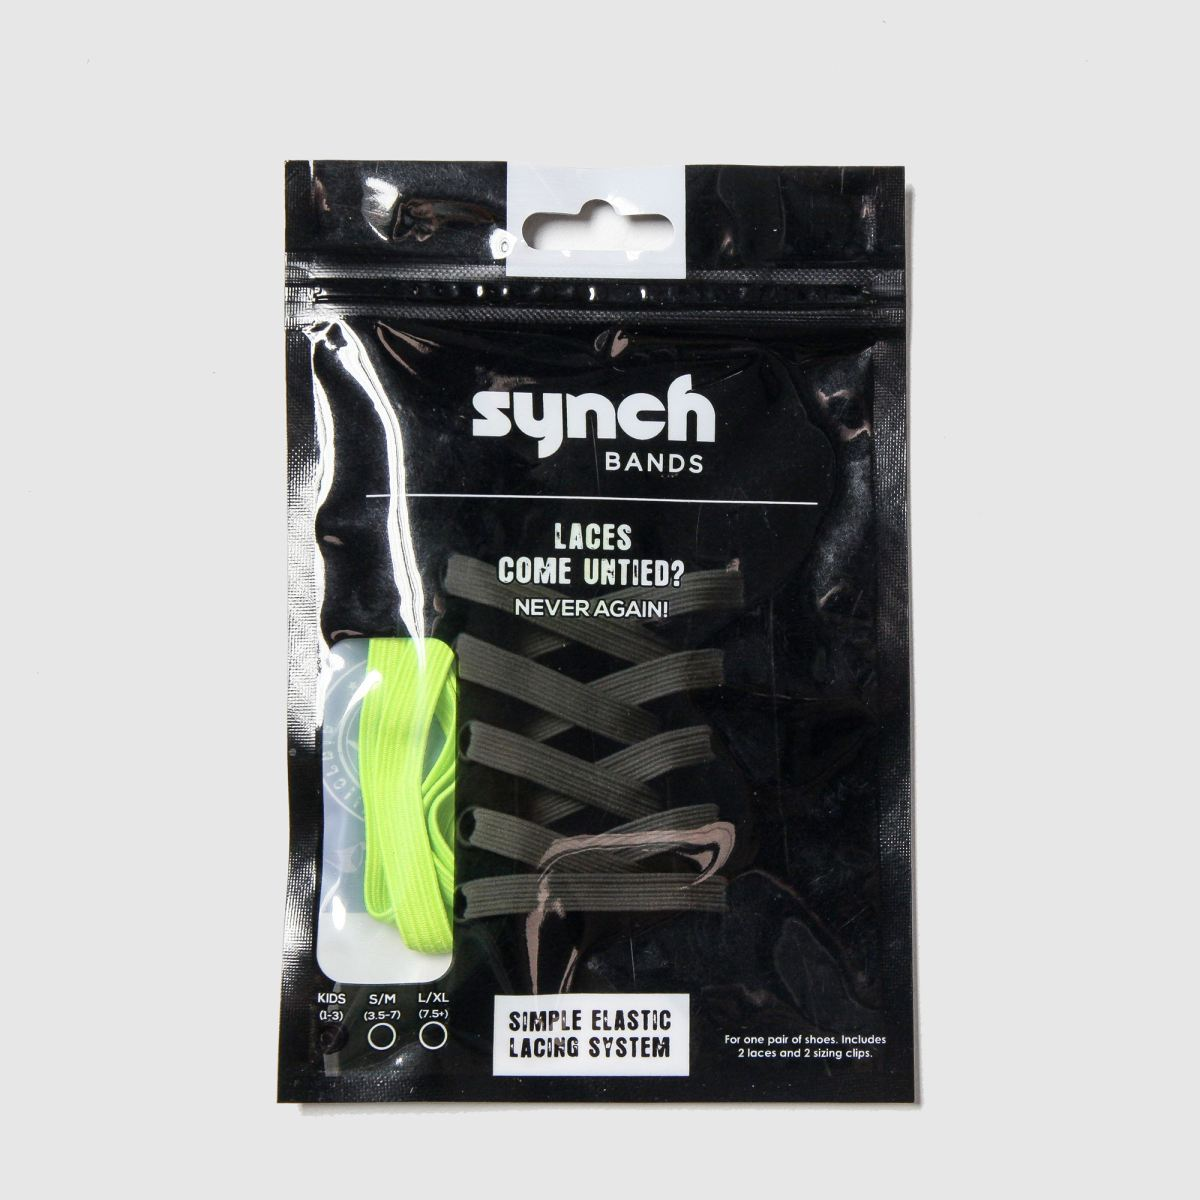 synch bands Accessories Synch Bands Green S/m Elastic Lace